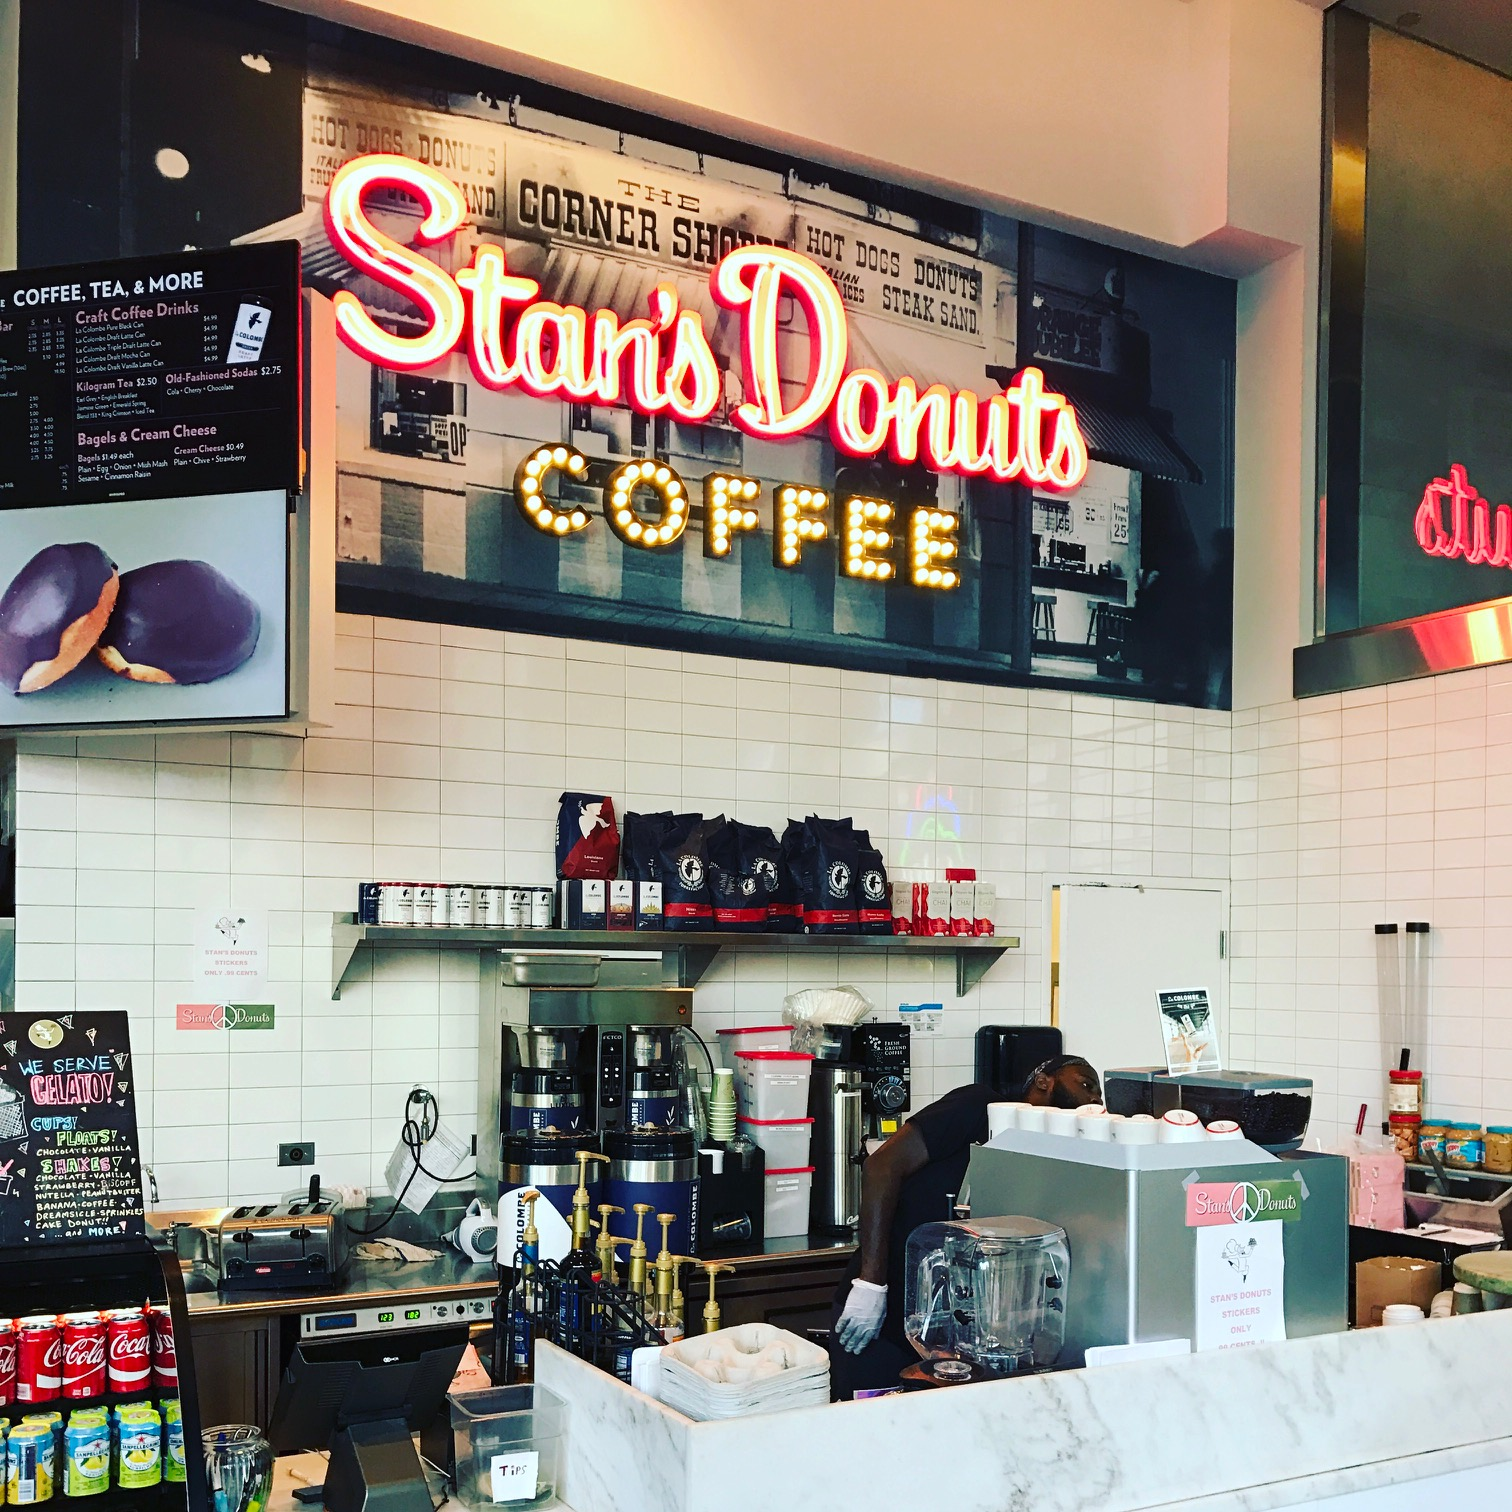 PHOTO: stan's donuts